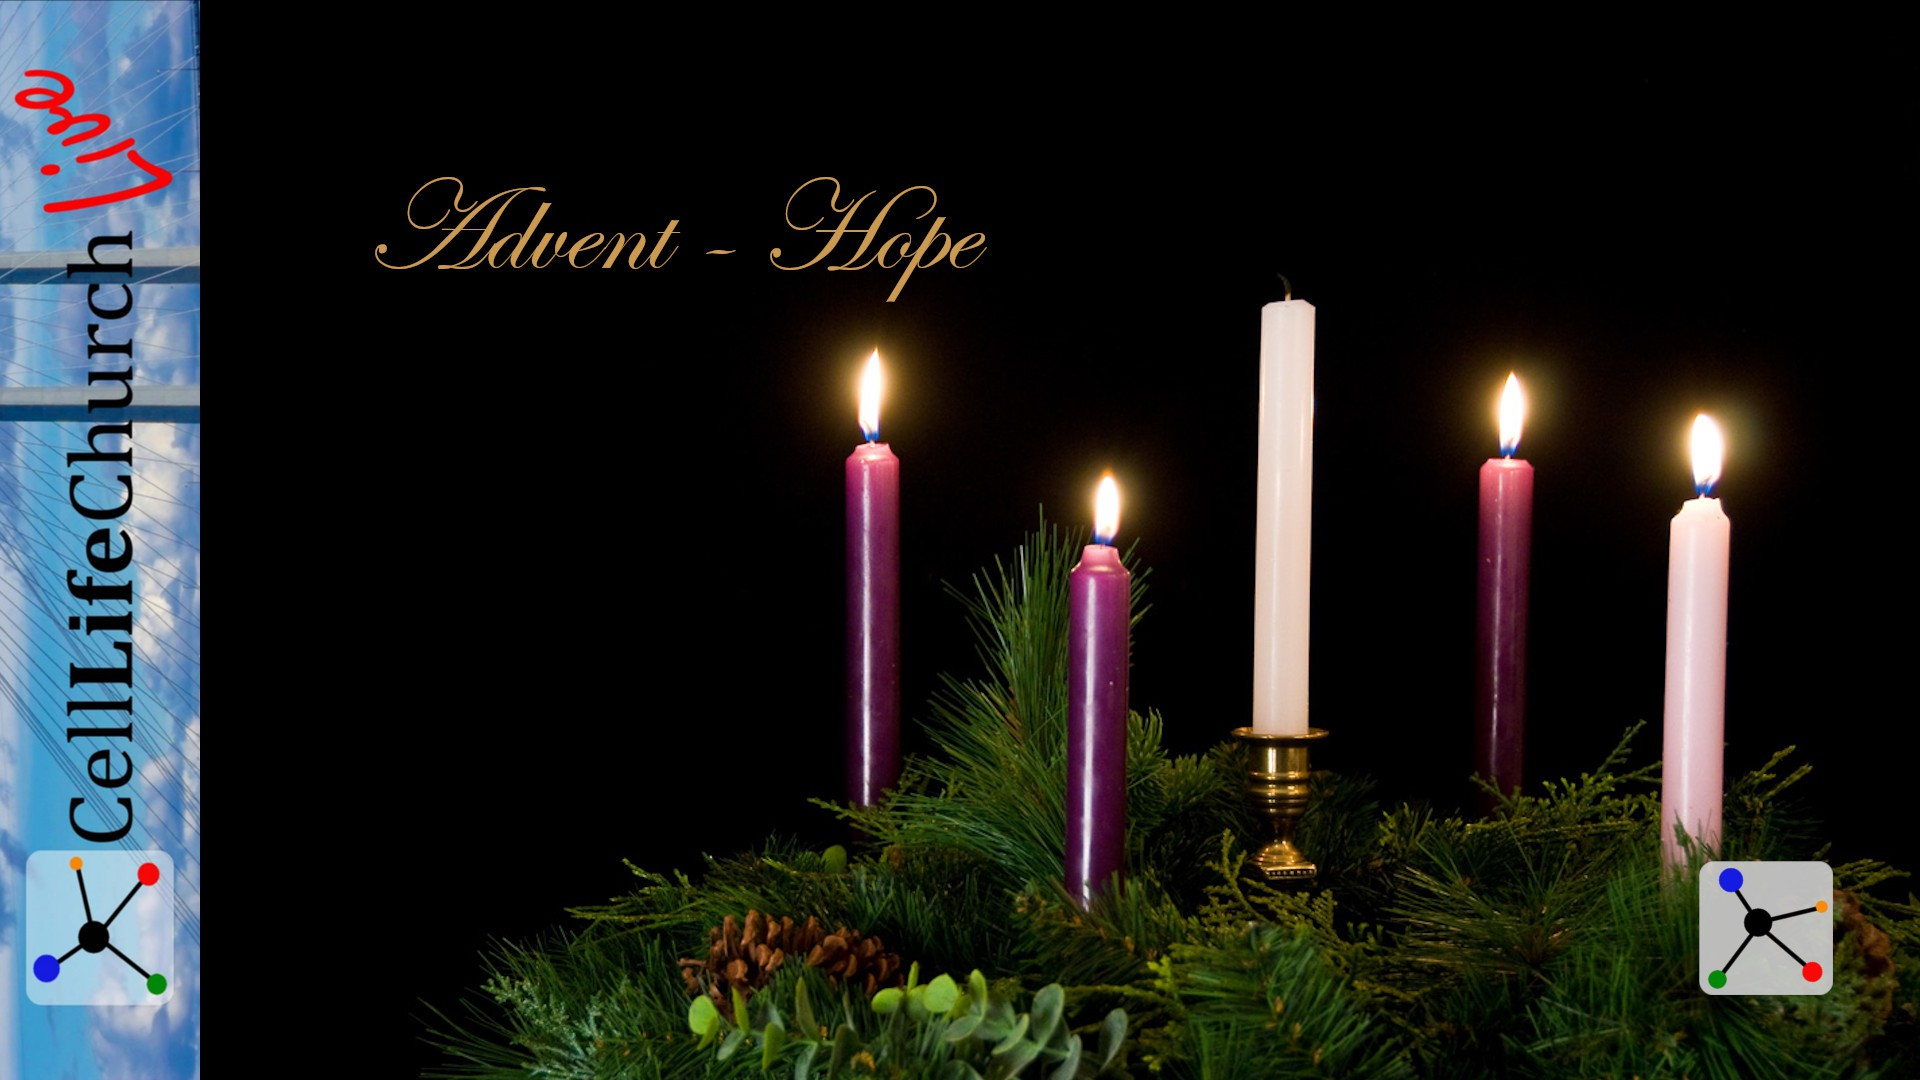 Advent - Hope